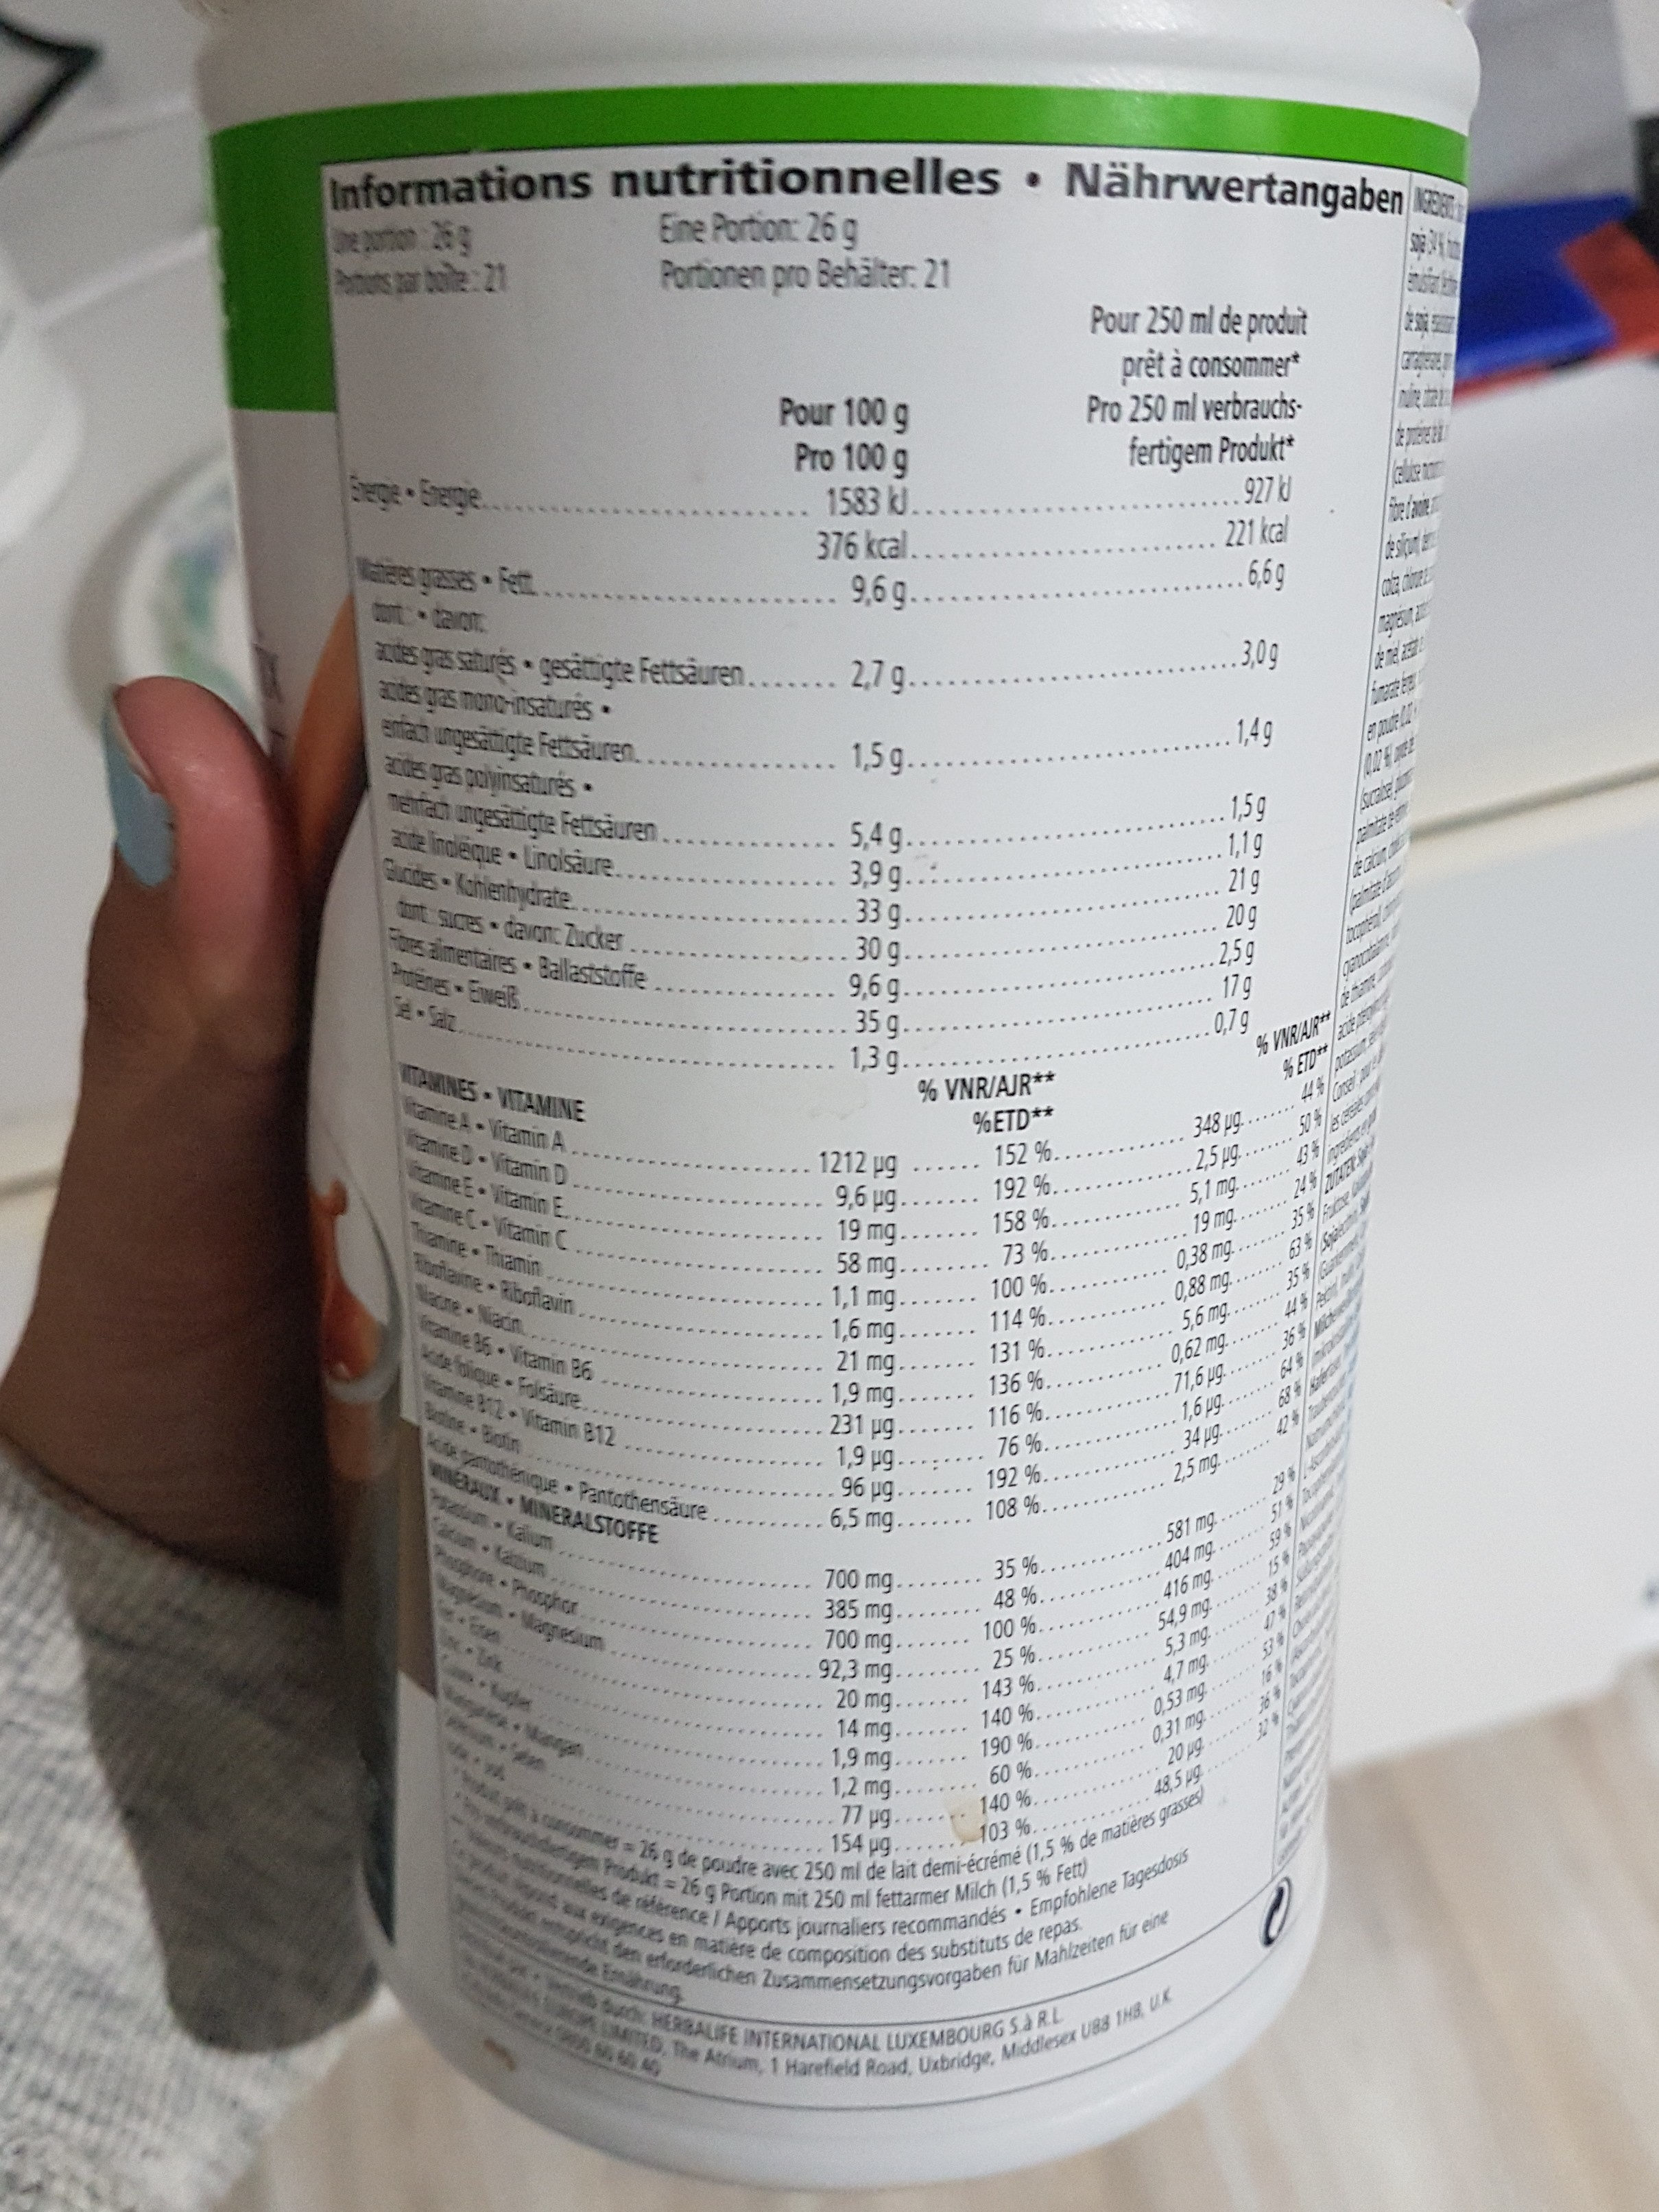 Formula 1 Ciocolat boisson nutritionnelle - Nutrition facts - fr